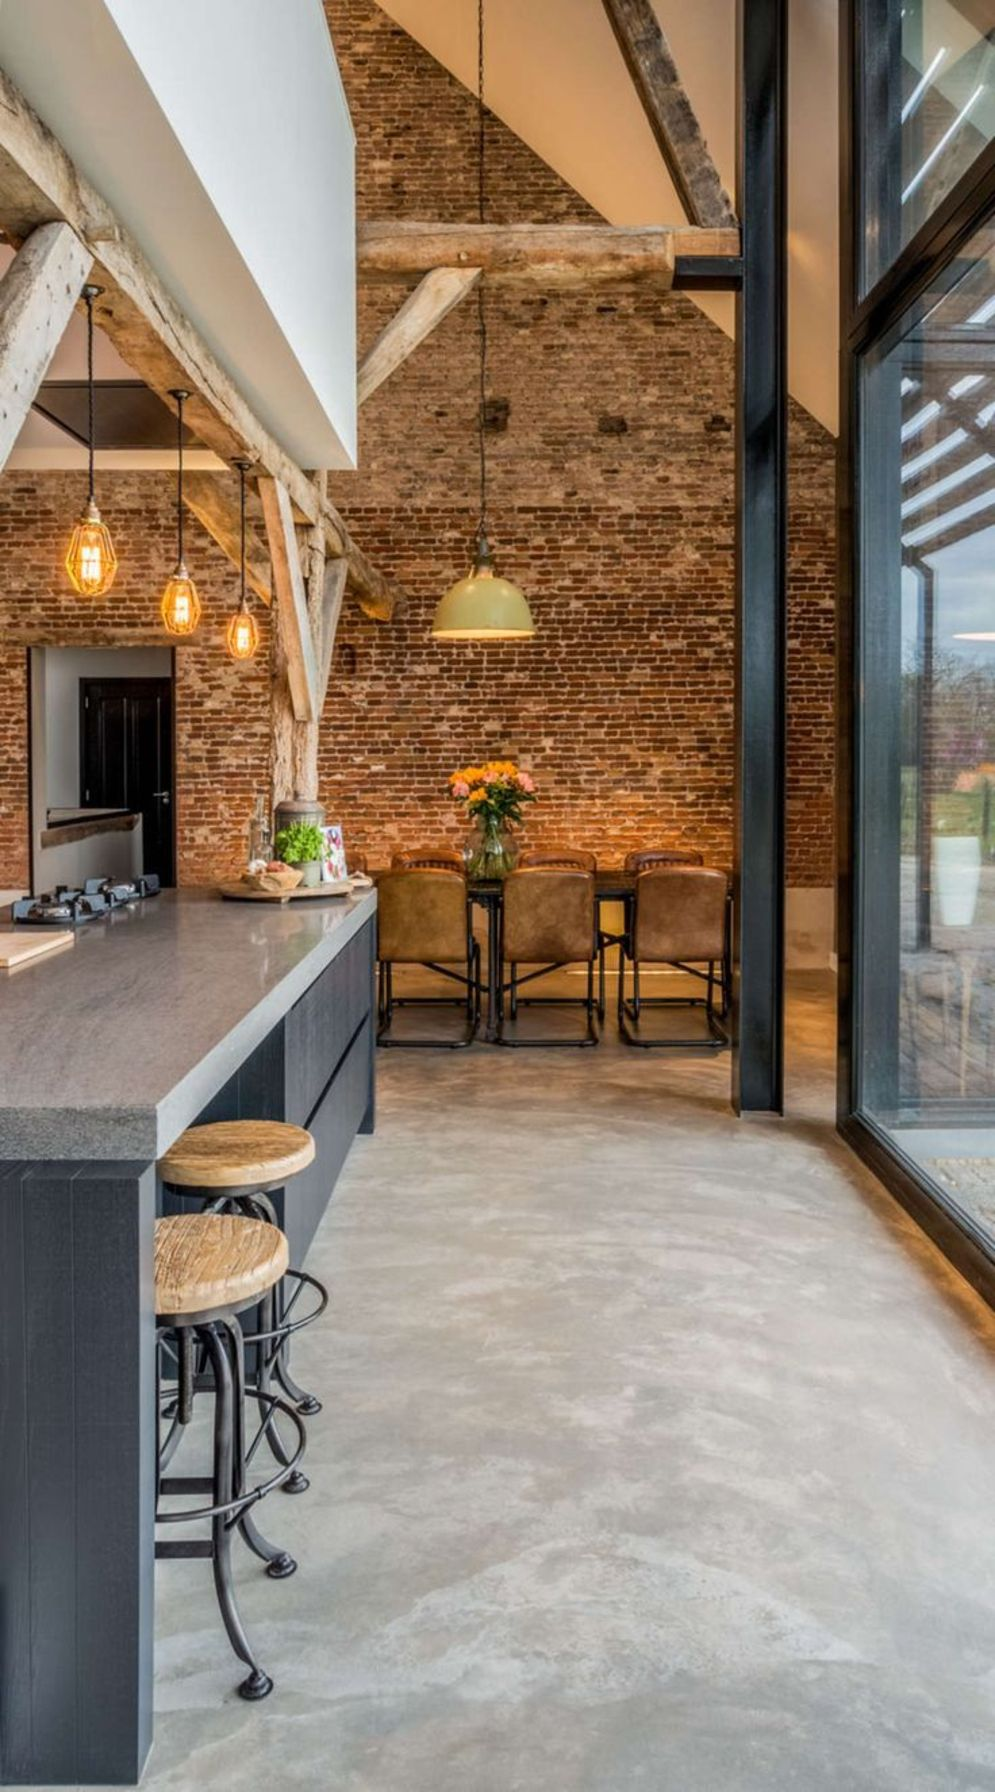 Wonderful interior statement brick wall improving interior display with modern rustic combination Image 28